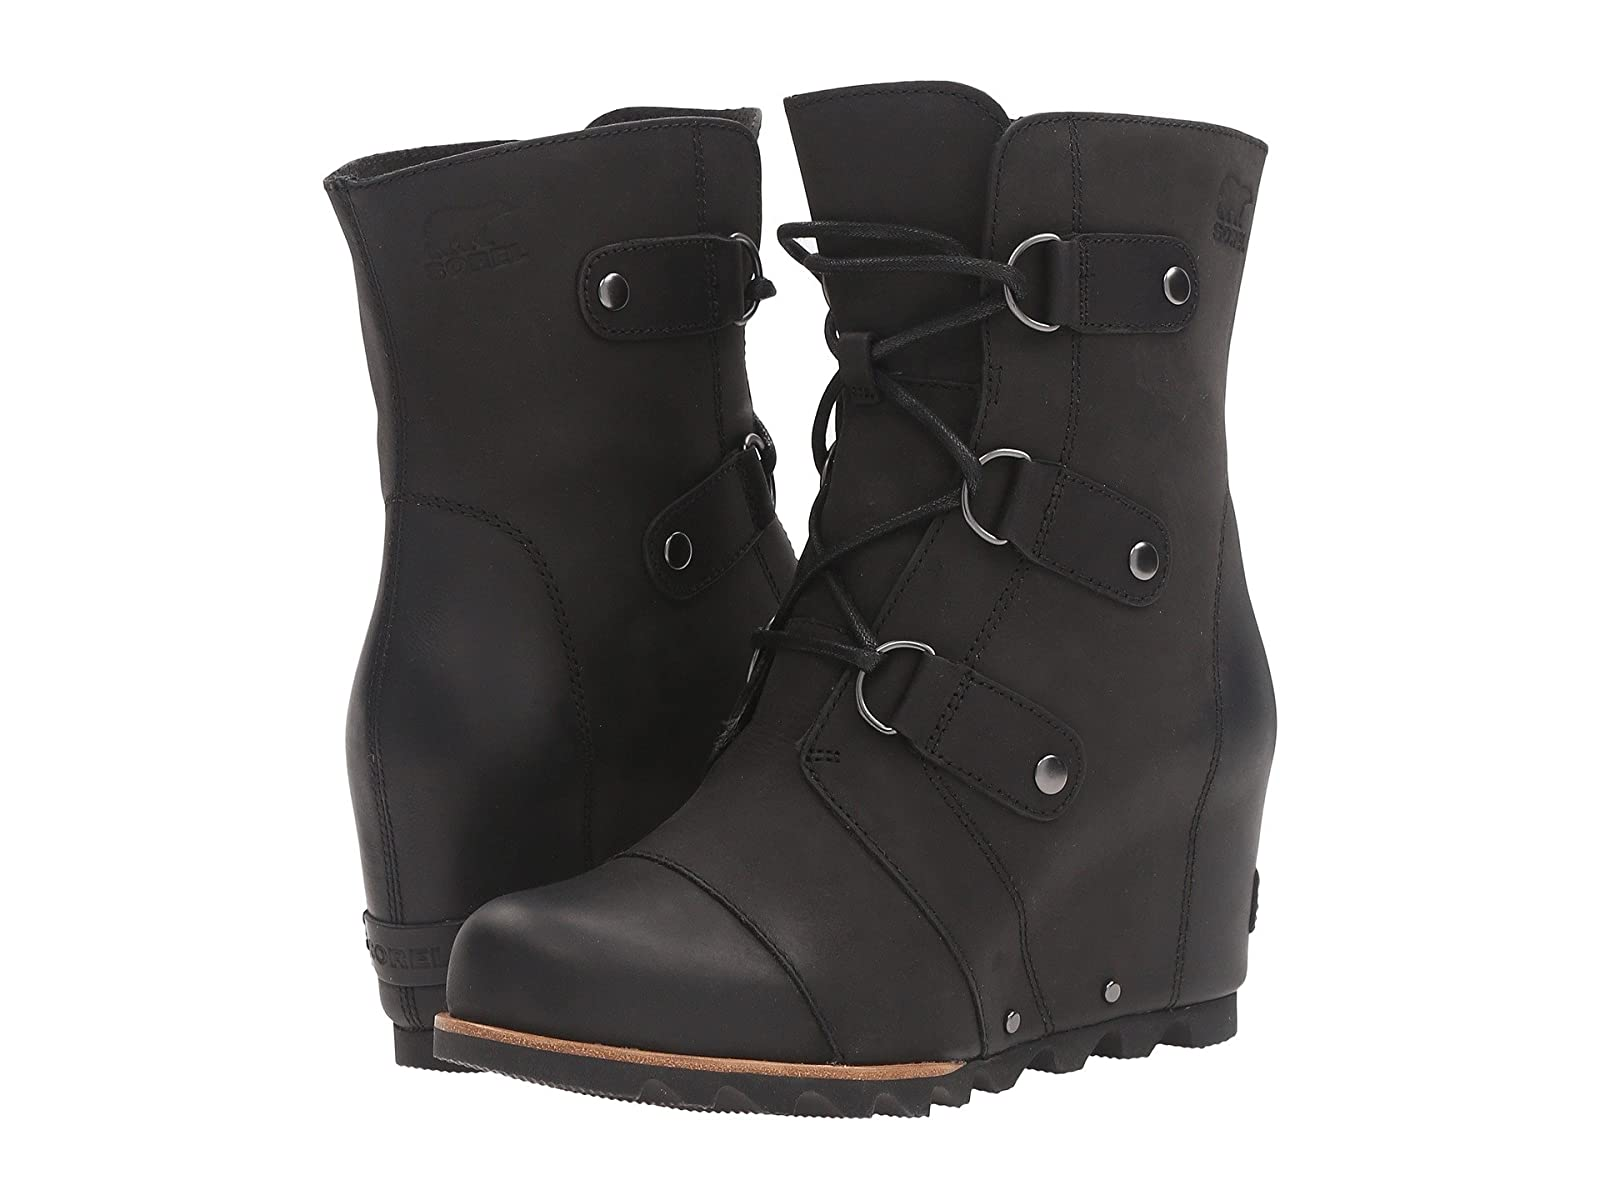 SOREL Joan Of Arctic Wedge MidCheap and distinctive eye-catching shoes